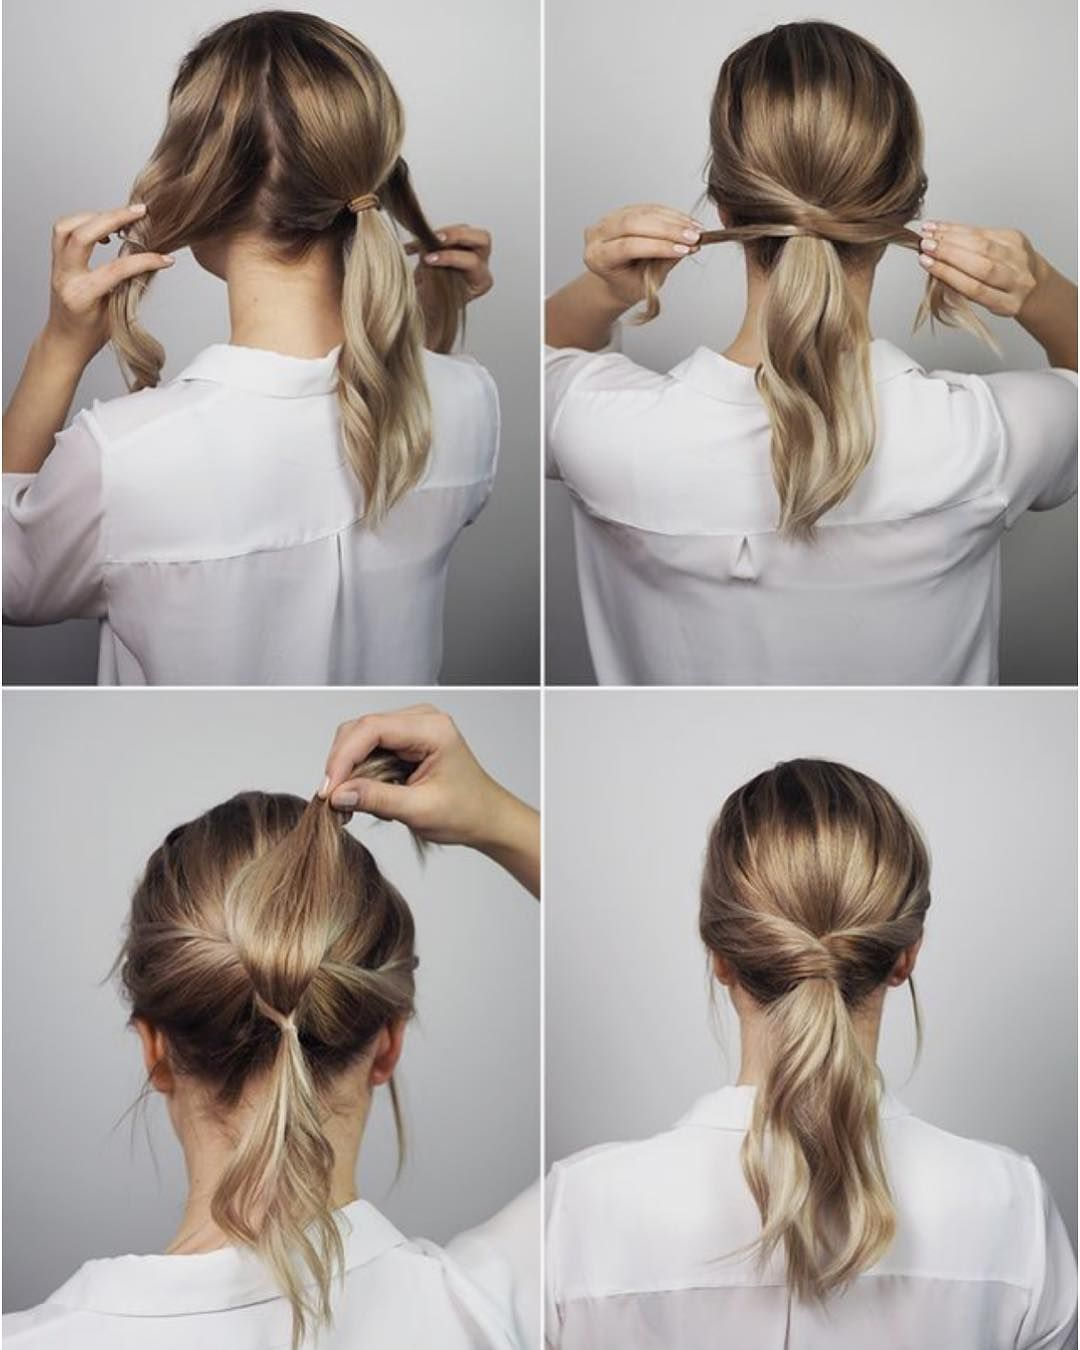 10 Easy Hairstyles For Long Hair To Do At Home Step By Step Hey Cinderella Office Hairstyles Medium Hair Styles Long Hair Styles